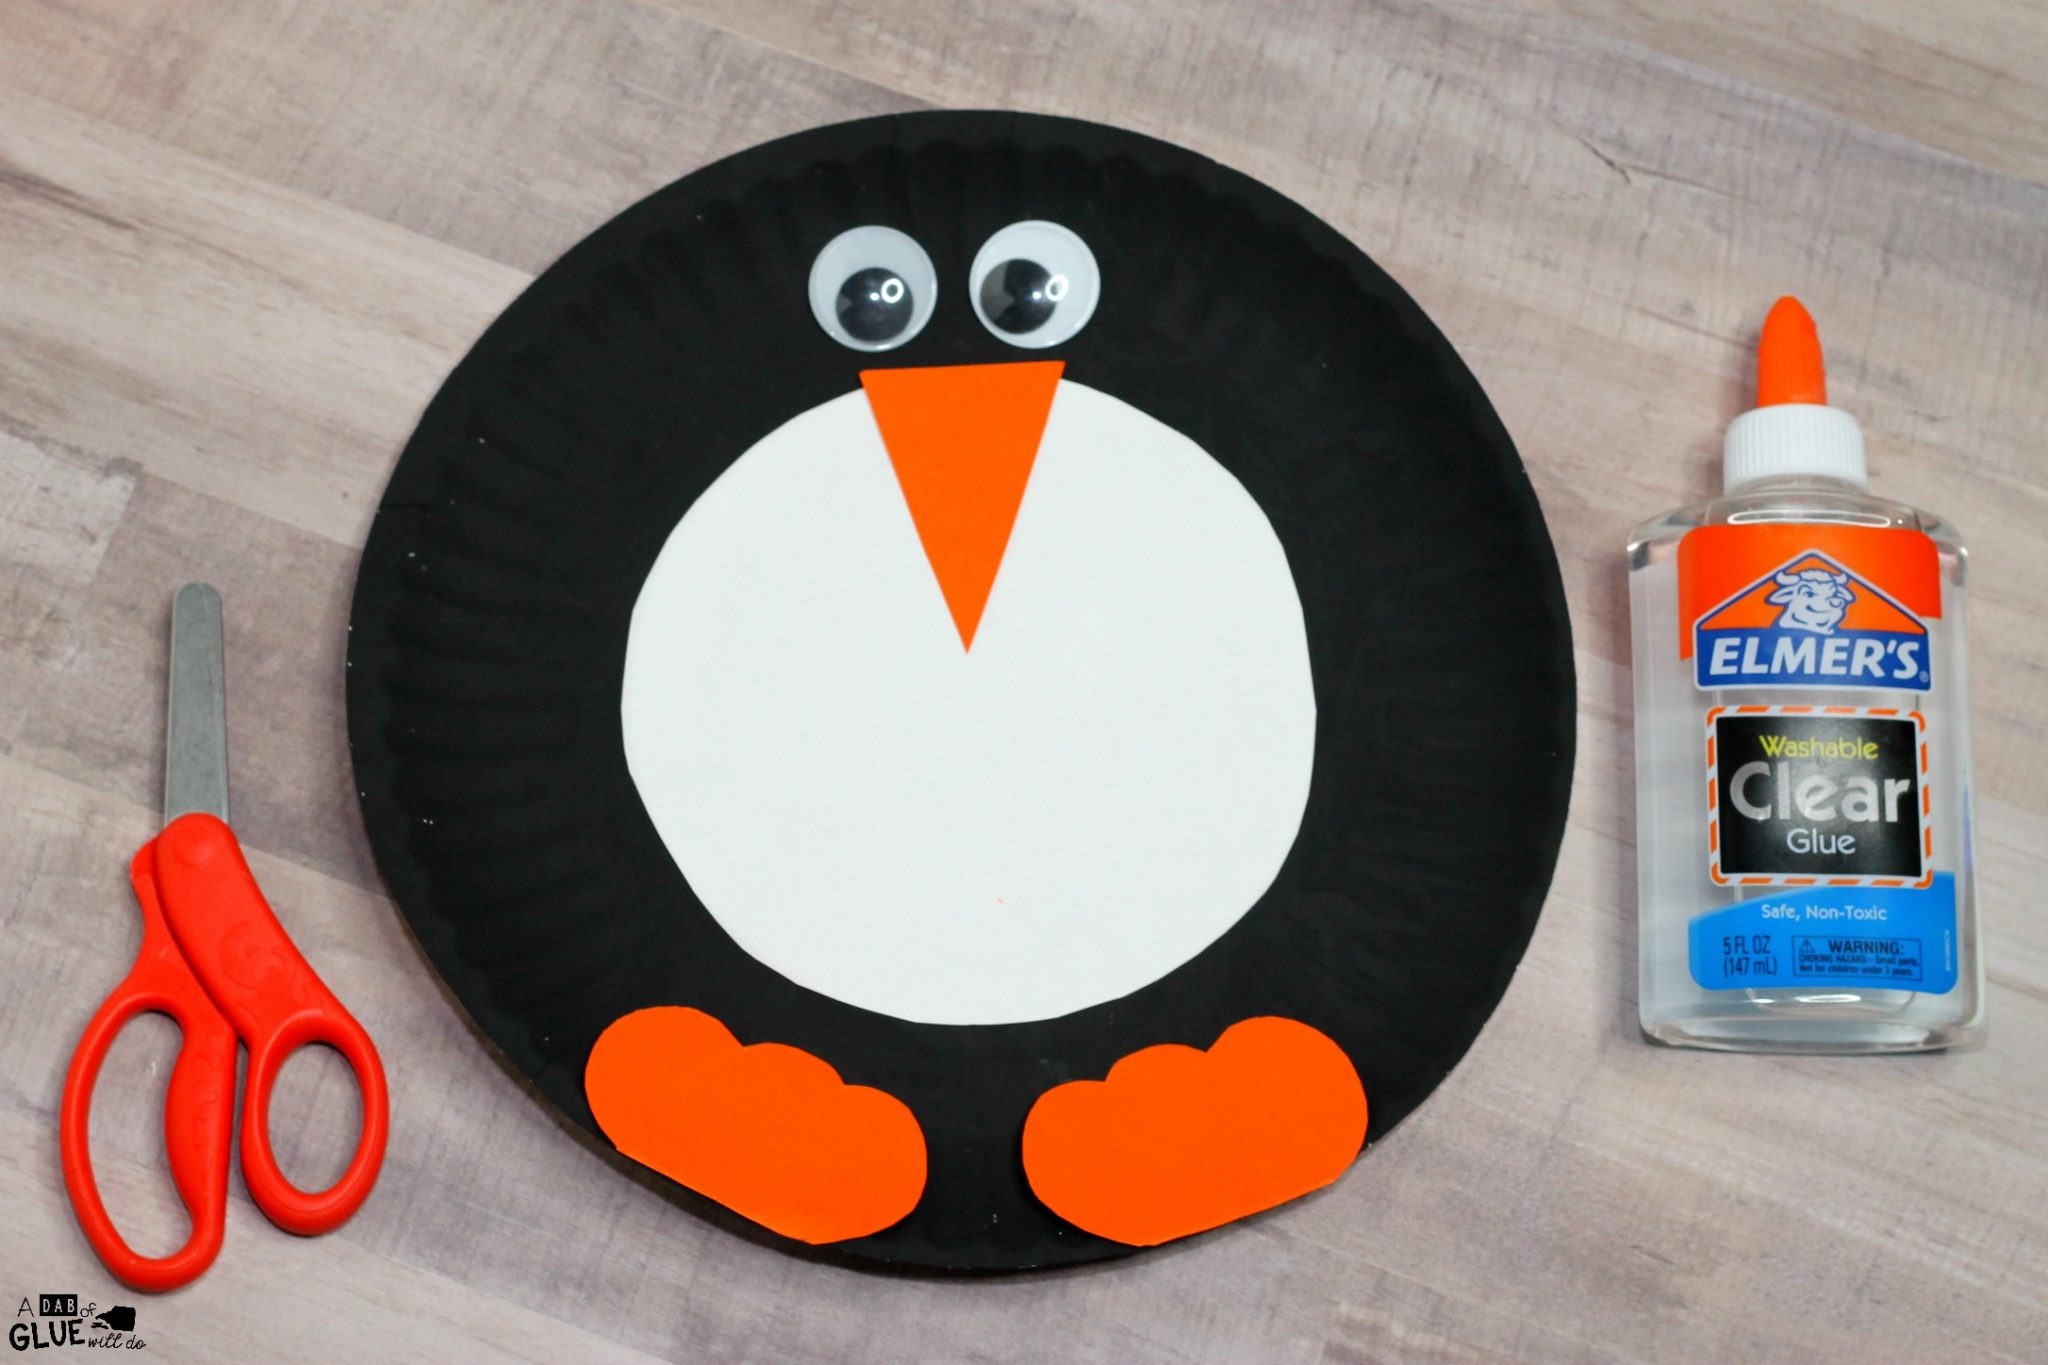 Add this Paper Plate Penguin Craft to your classroom winter crafts! It's perfect for winter habitat unit study or penguin animal study activities too.